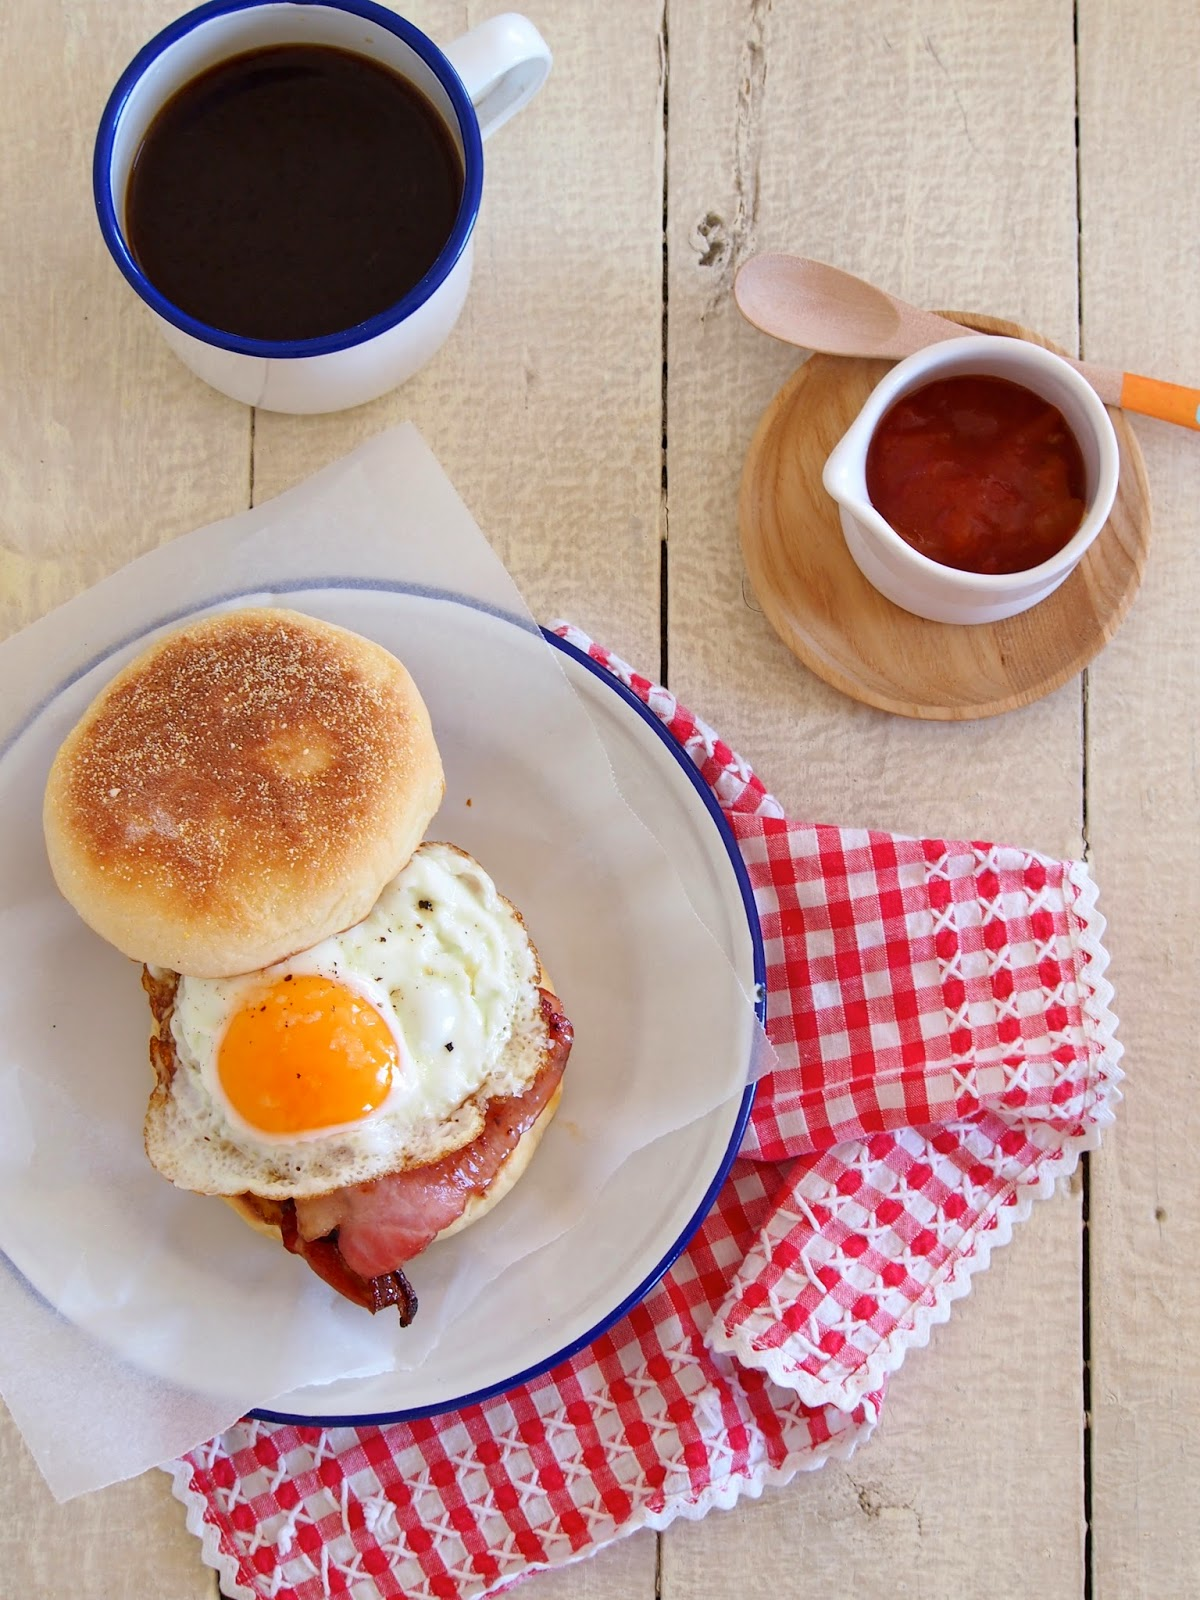 geo does...: egg & maple bacon english muffins...